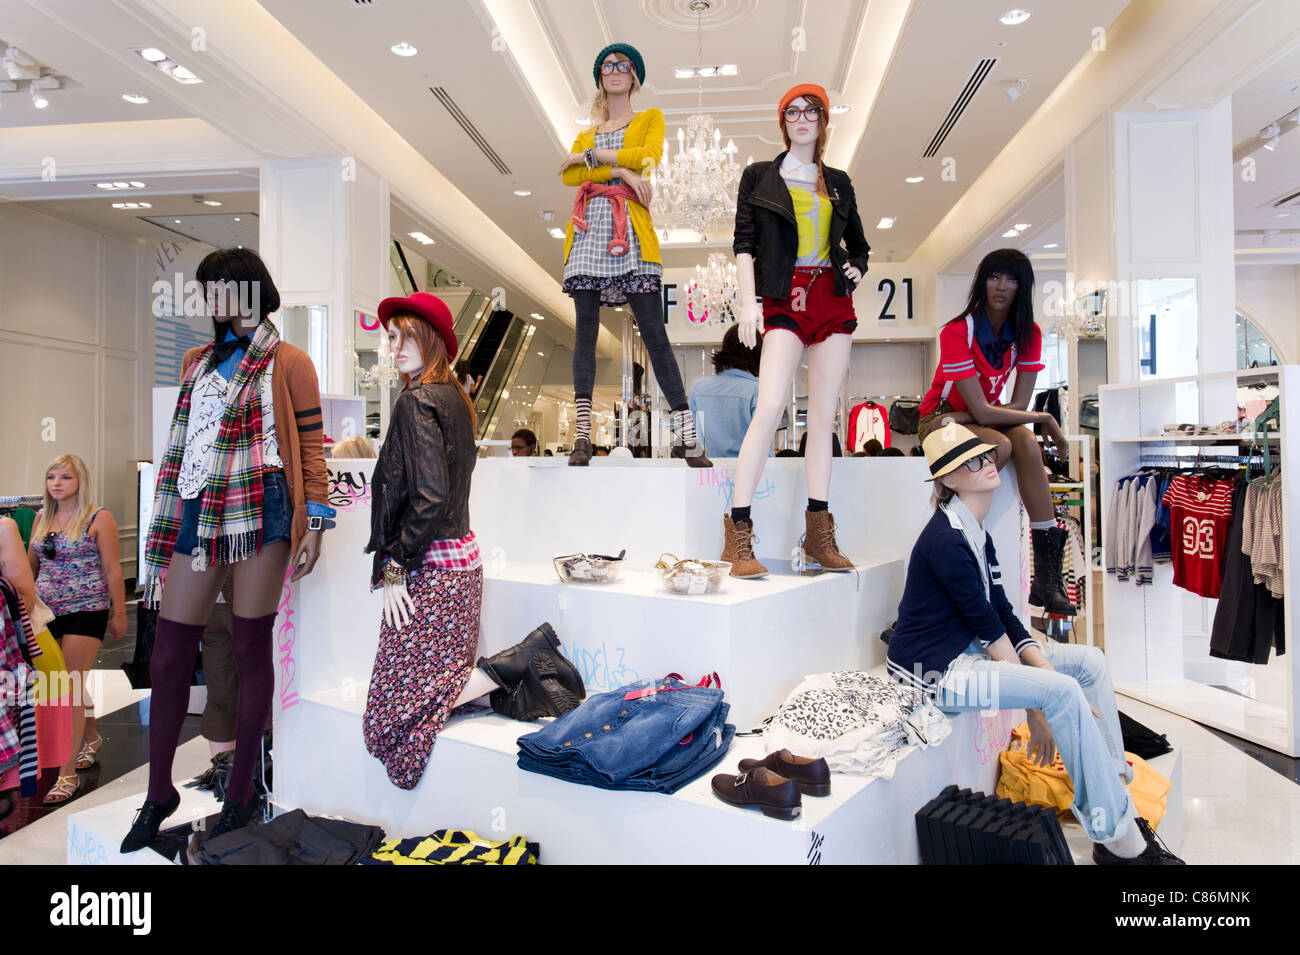 Clothing Stores In England London